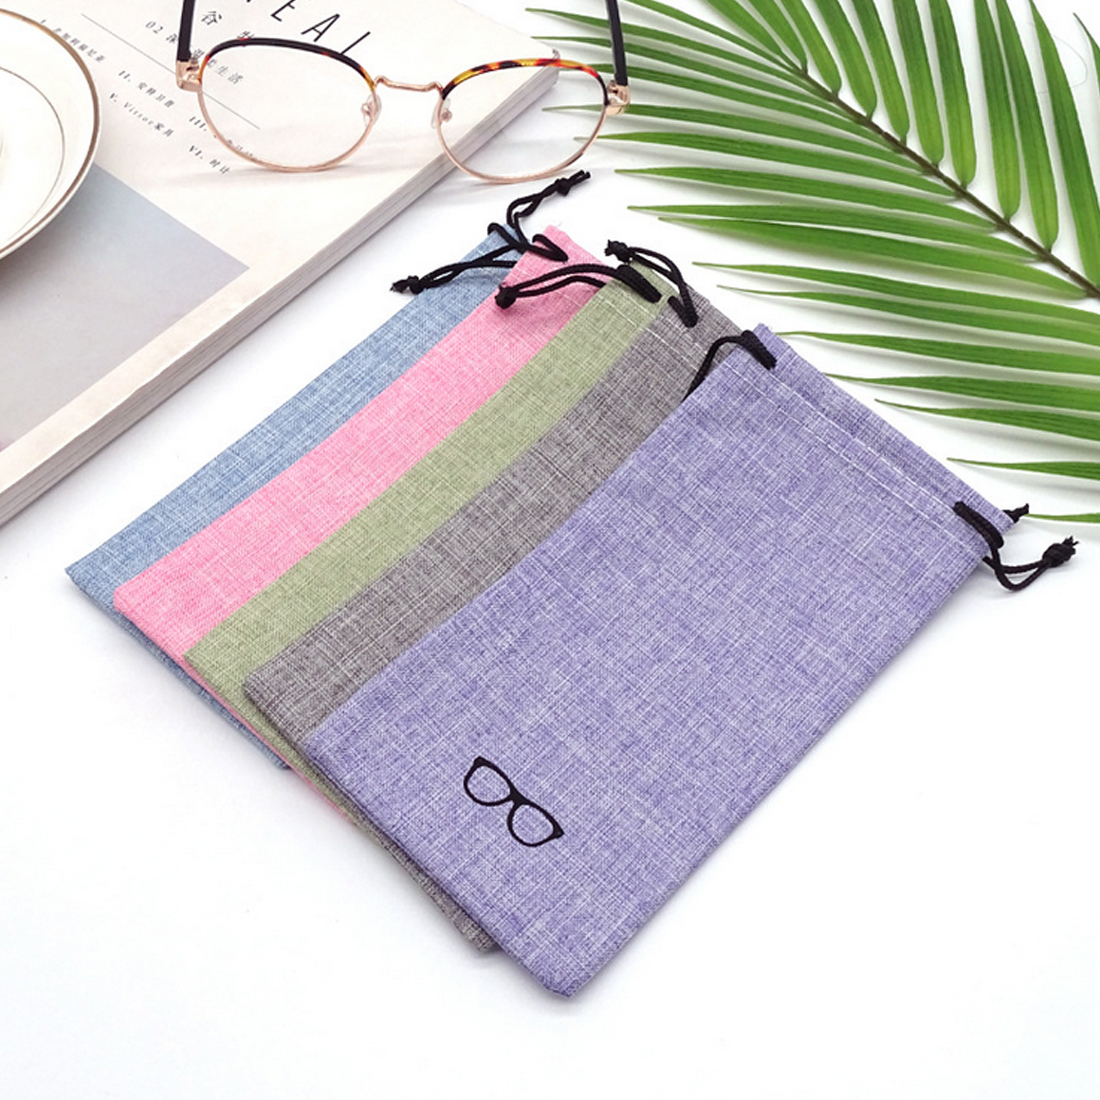 1pcs Lot Good Quality Portable Sunglasses Pouch for Eyewear Linen Fabric Smooth Surface Container Glasses Bag in Eyewear Accessories from Apparel Accessories